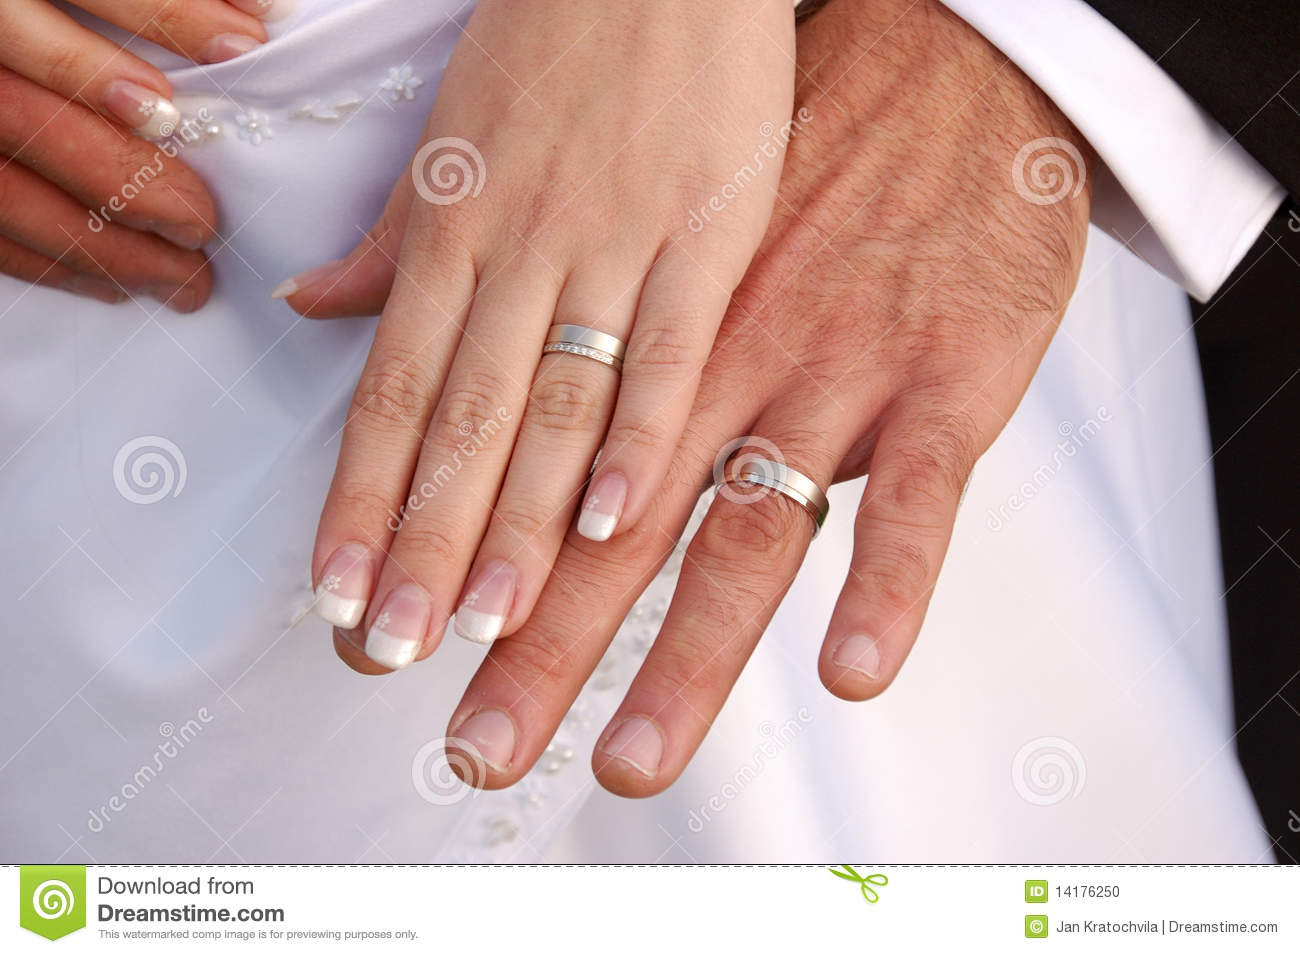 couple s video ceremonygroom rings the during finger concept together putting hands a bride groom and engagement ceremony his togetherwedding wife of put ring on brides grooms wedding lovely